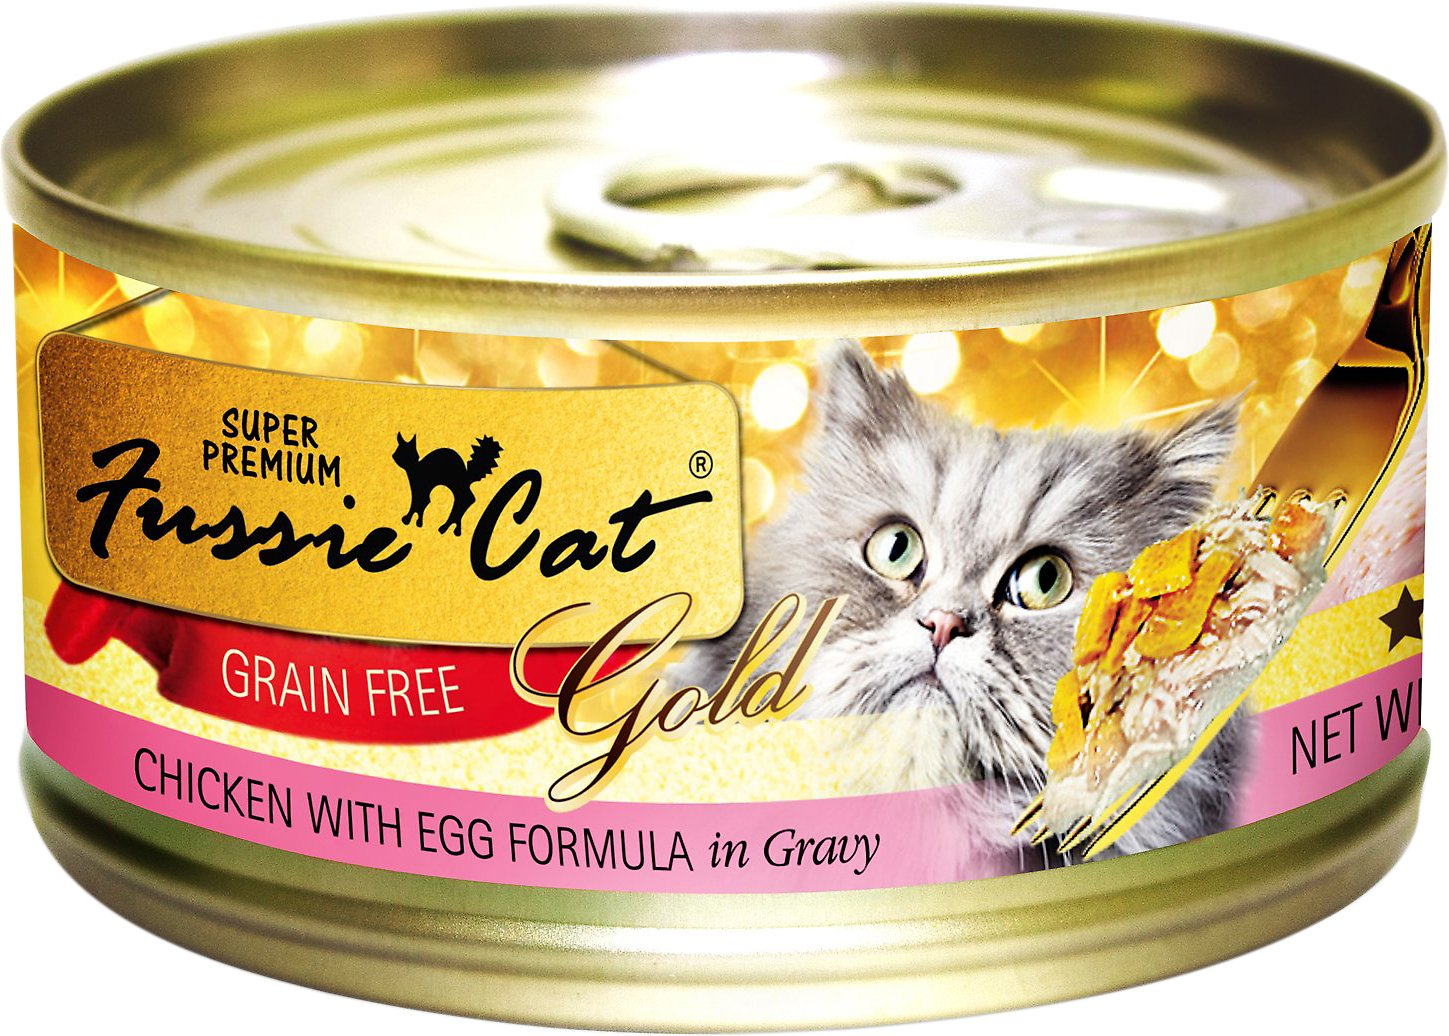 Fussie Cat Super Premium Chicken with Egg Formula in Gravy Grain-Free Canned Cat Food, 2.82-oz